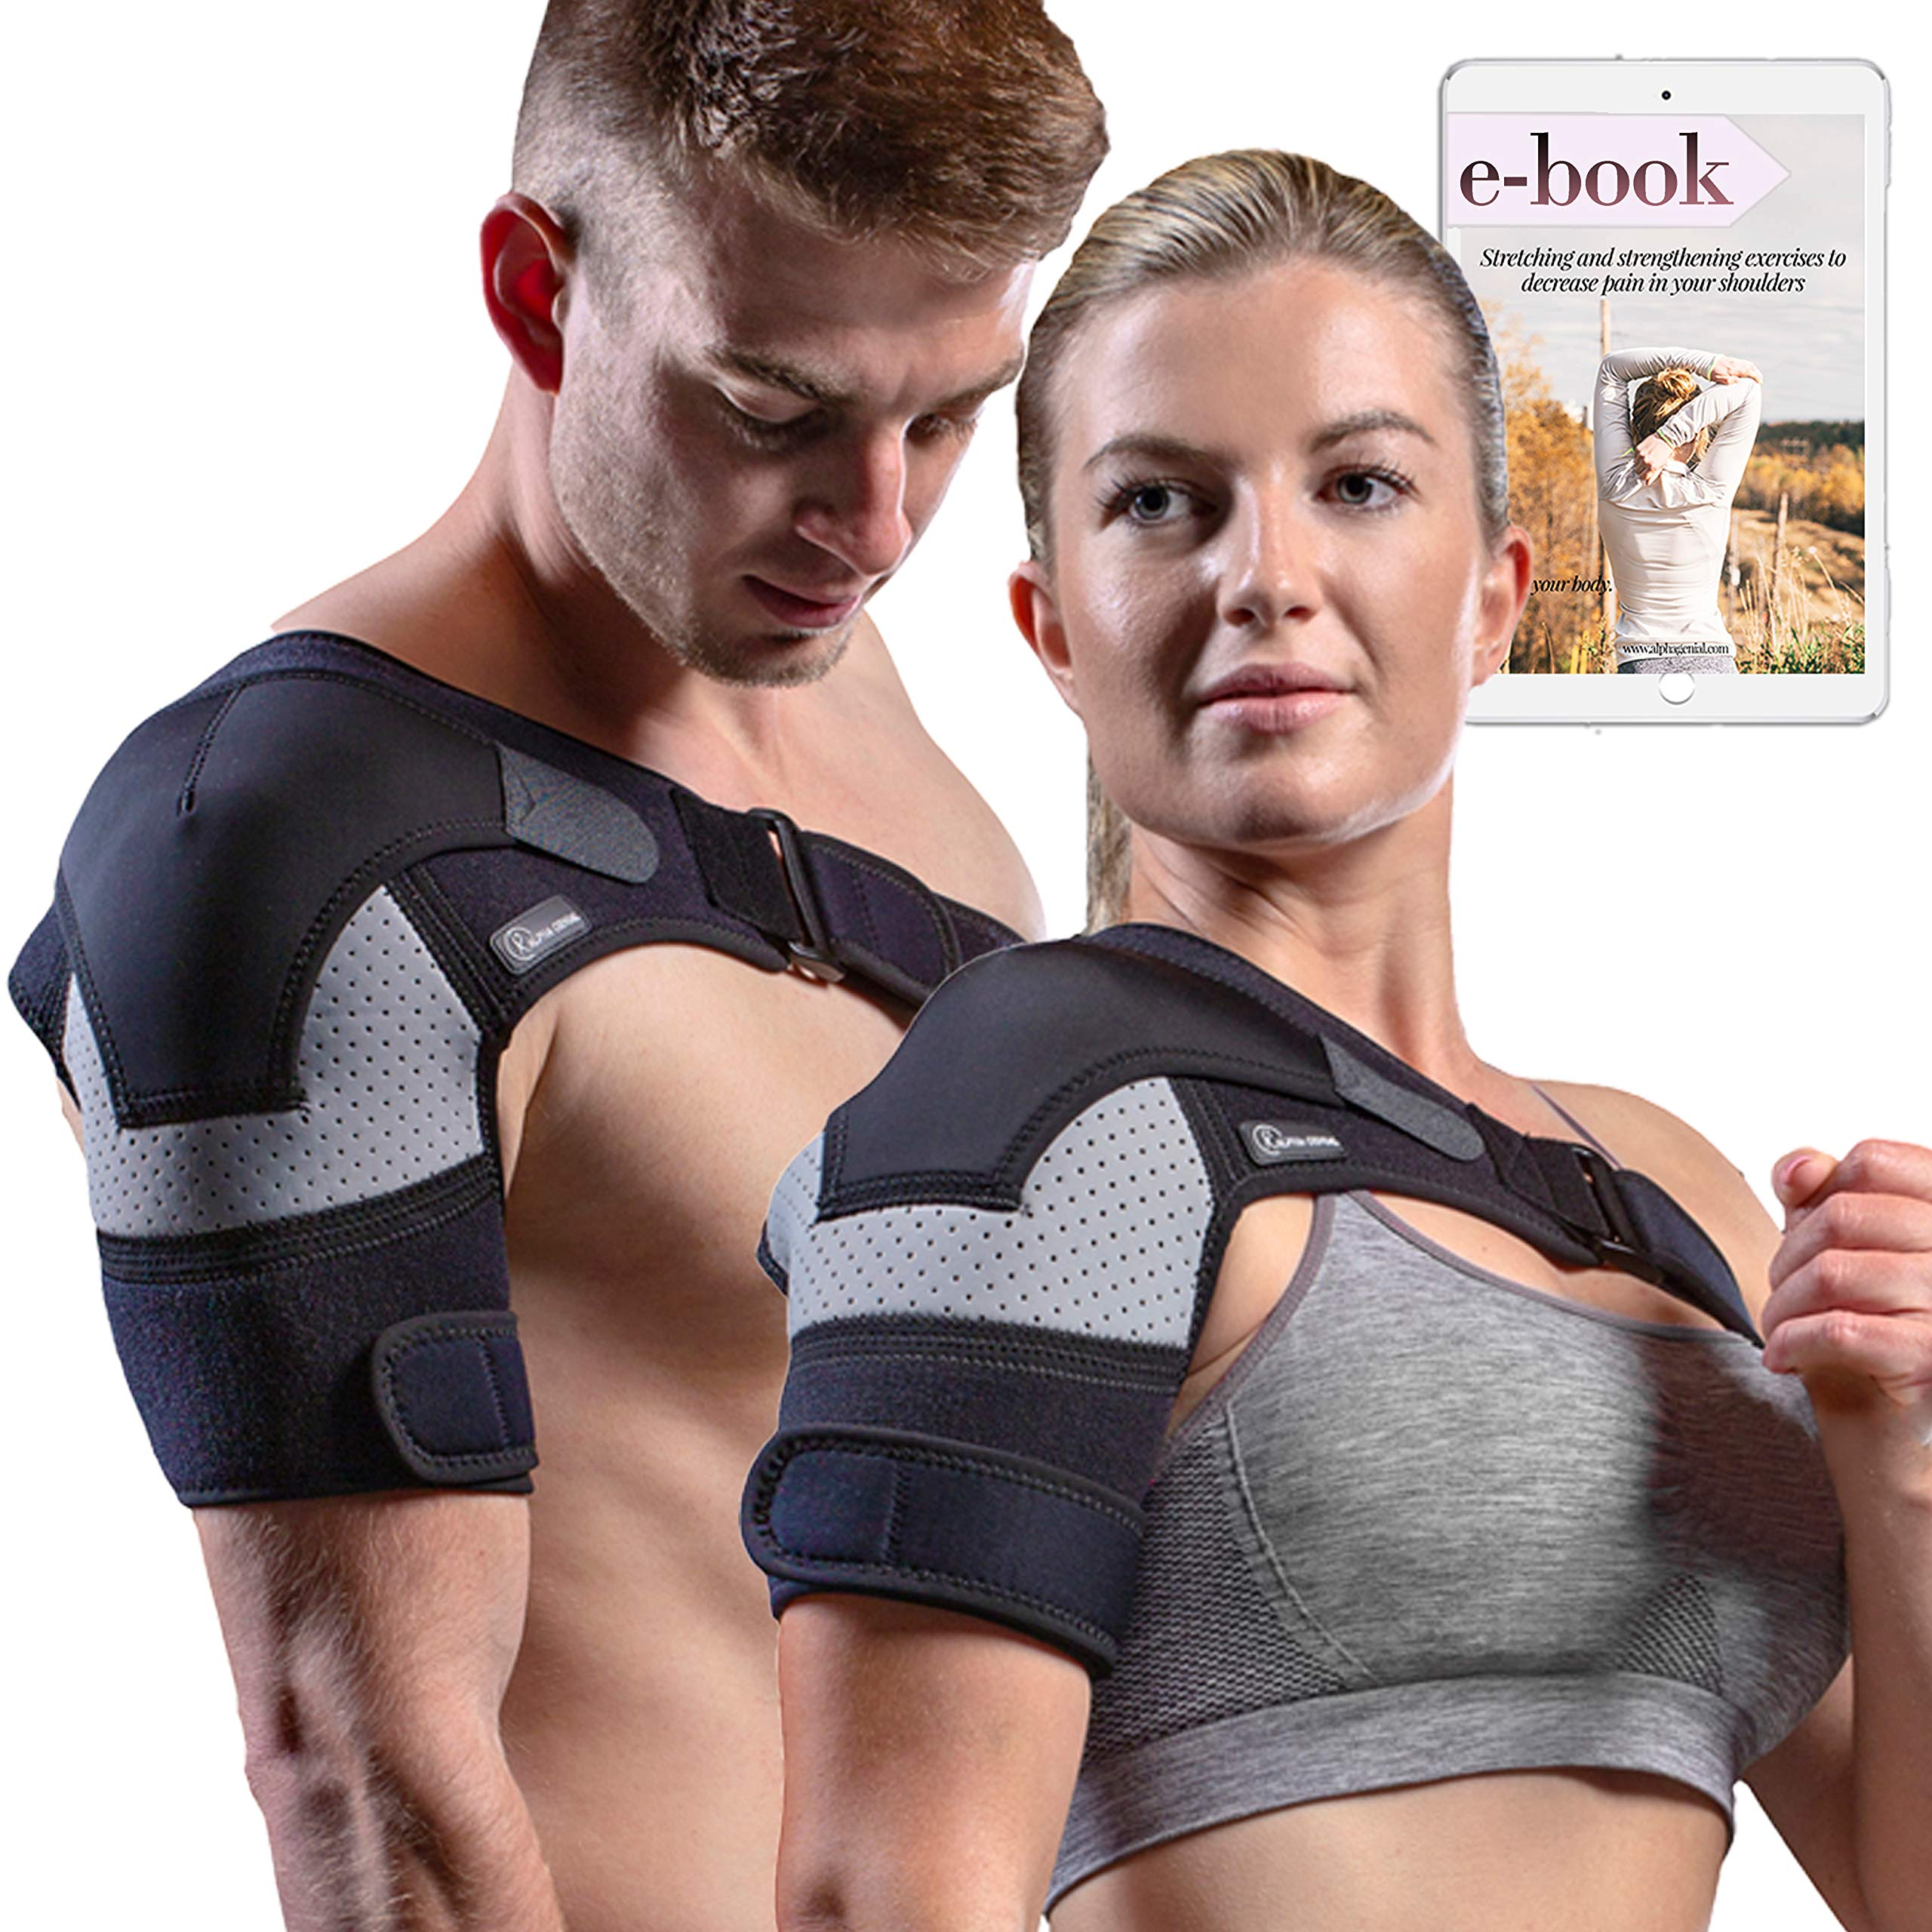 Shoulder Brace - Compression Sleeve for Rotator Cuff Pain Relief, Adjustable Support for Men and Women, Pressure Pad for hot or ice Pack for Shoulder Impingement Syndrome, Tendonitis, Arthritis... by Alpha Genial